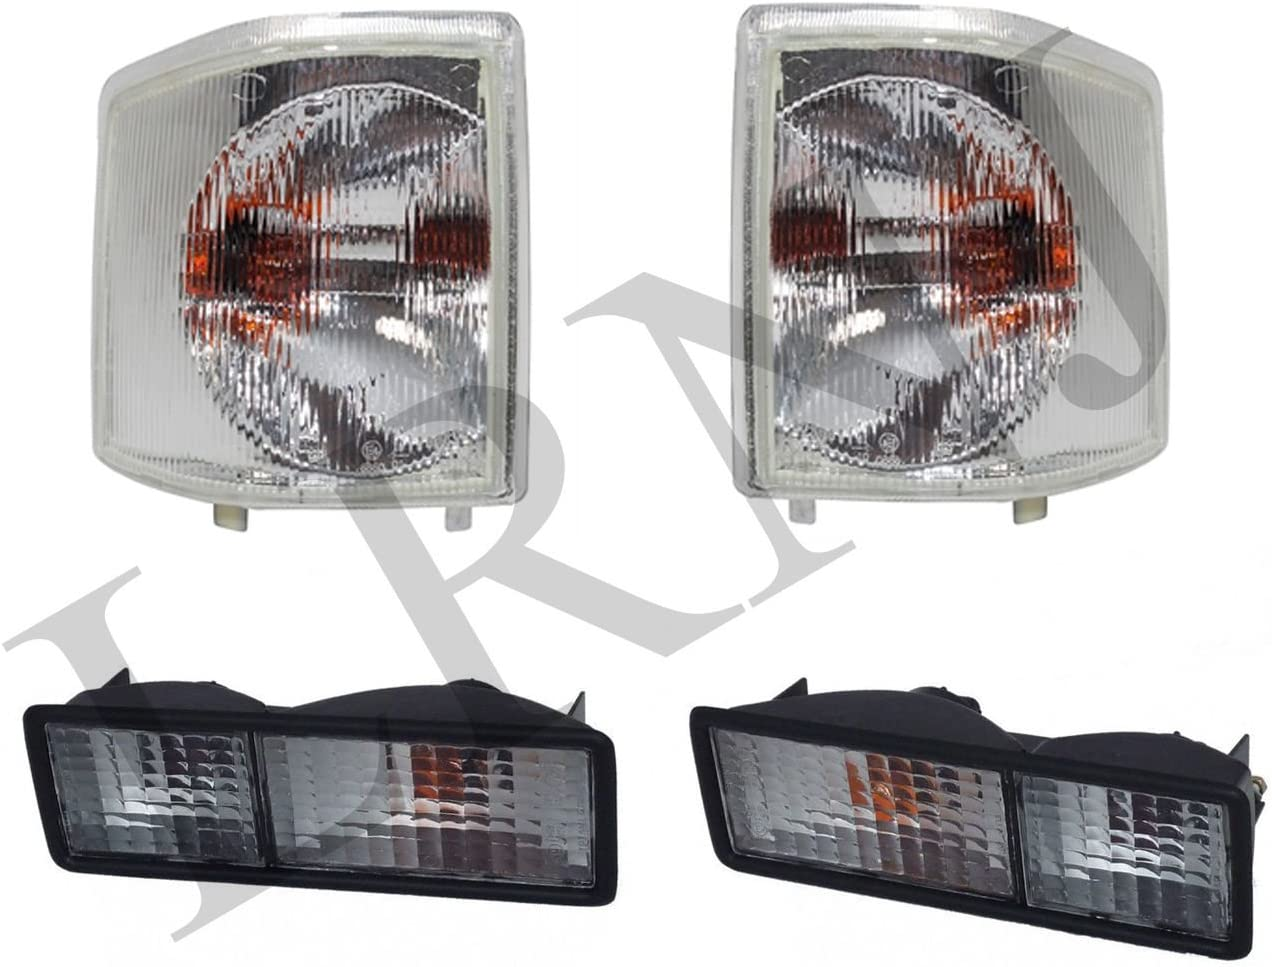 Colorado Springs Mall BRITPART FRONT REAR CLEAR LIGHT SET Max 46% OFF LH COMPATIBLE WITH RH LA